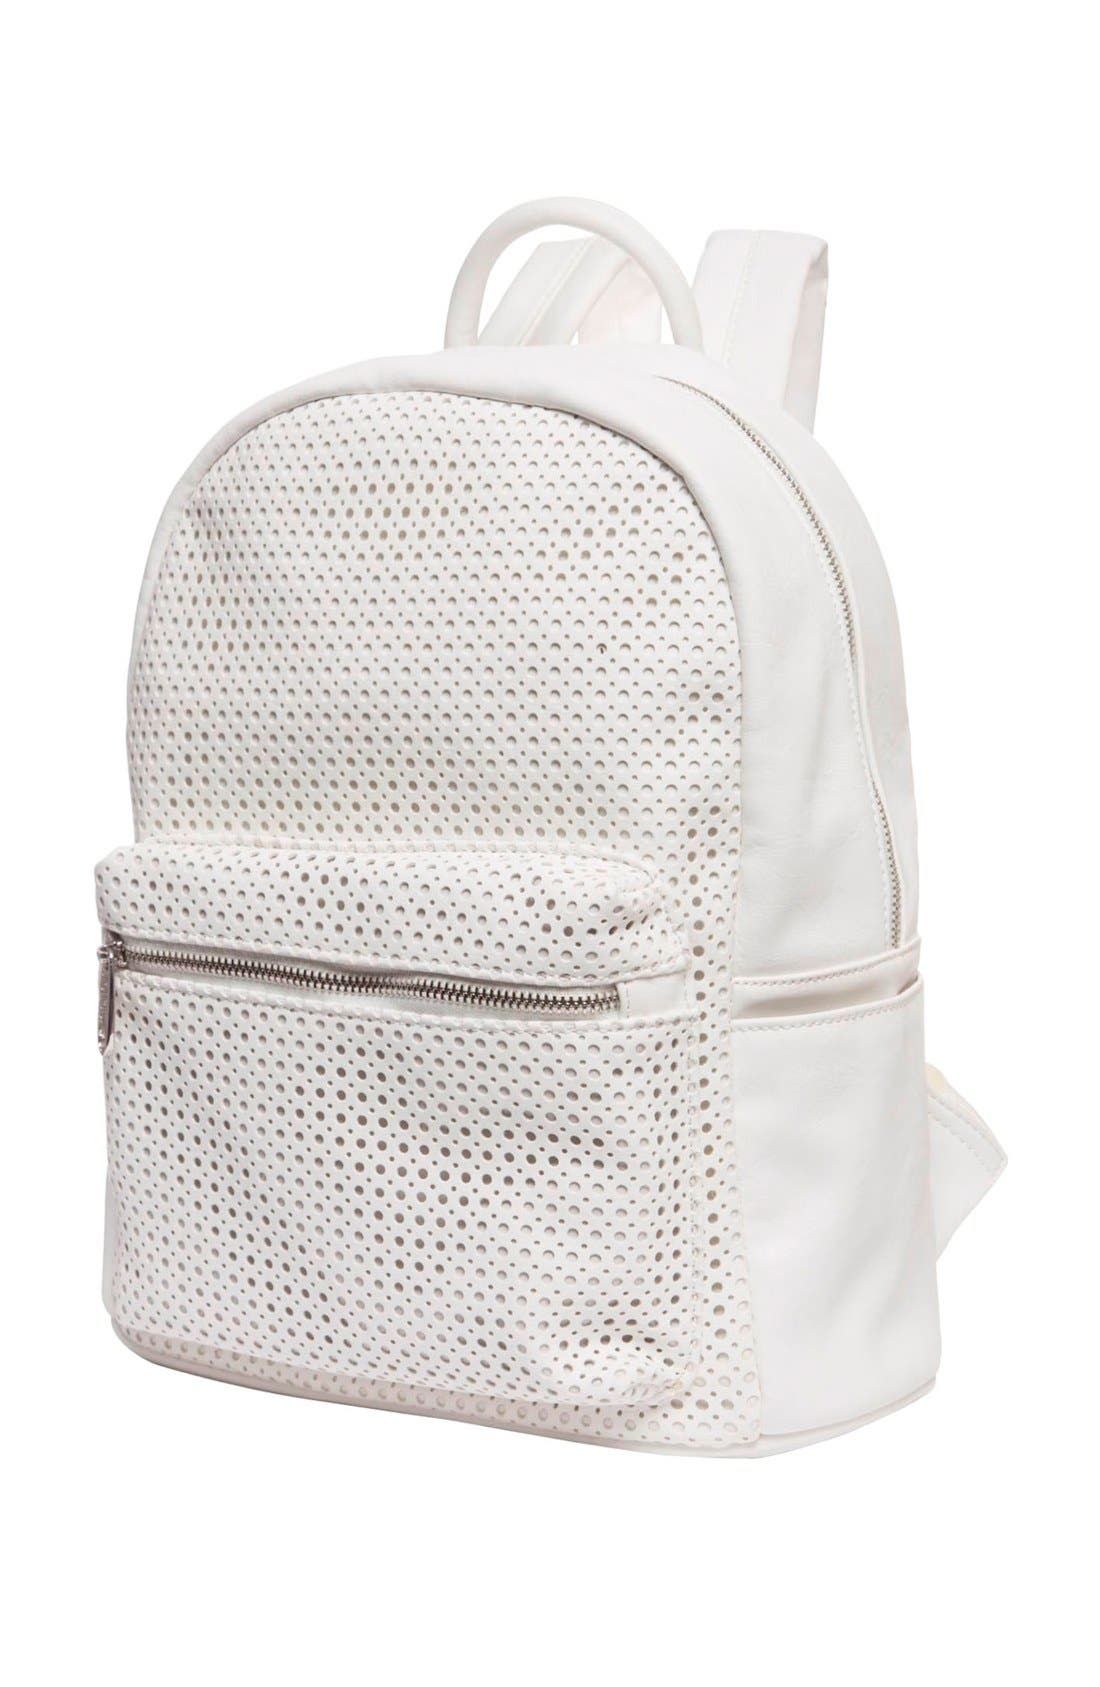 Lola Perforated Vegan Leather Backpack,                             Alternate thumbnail 2, color,                             100